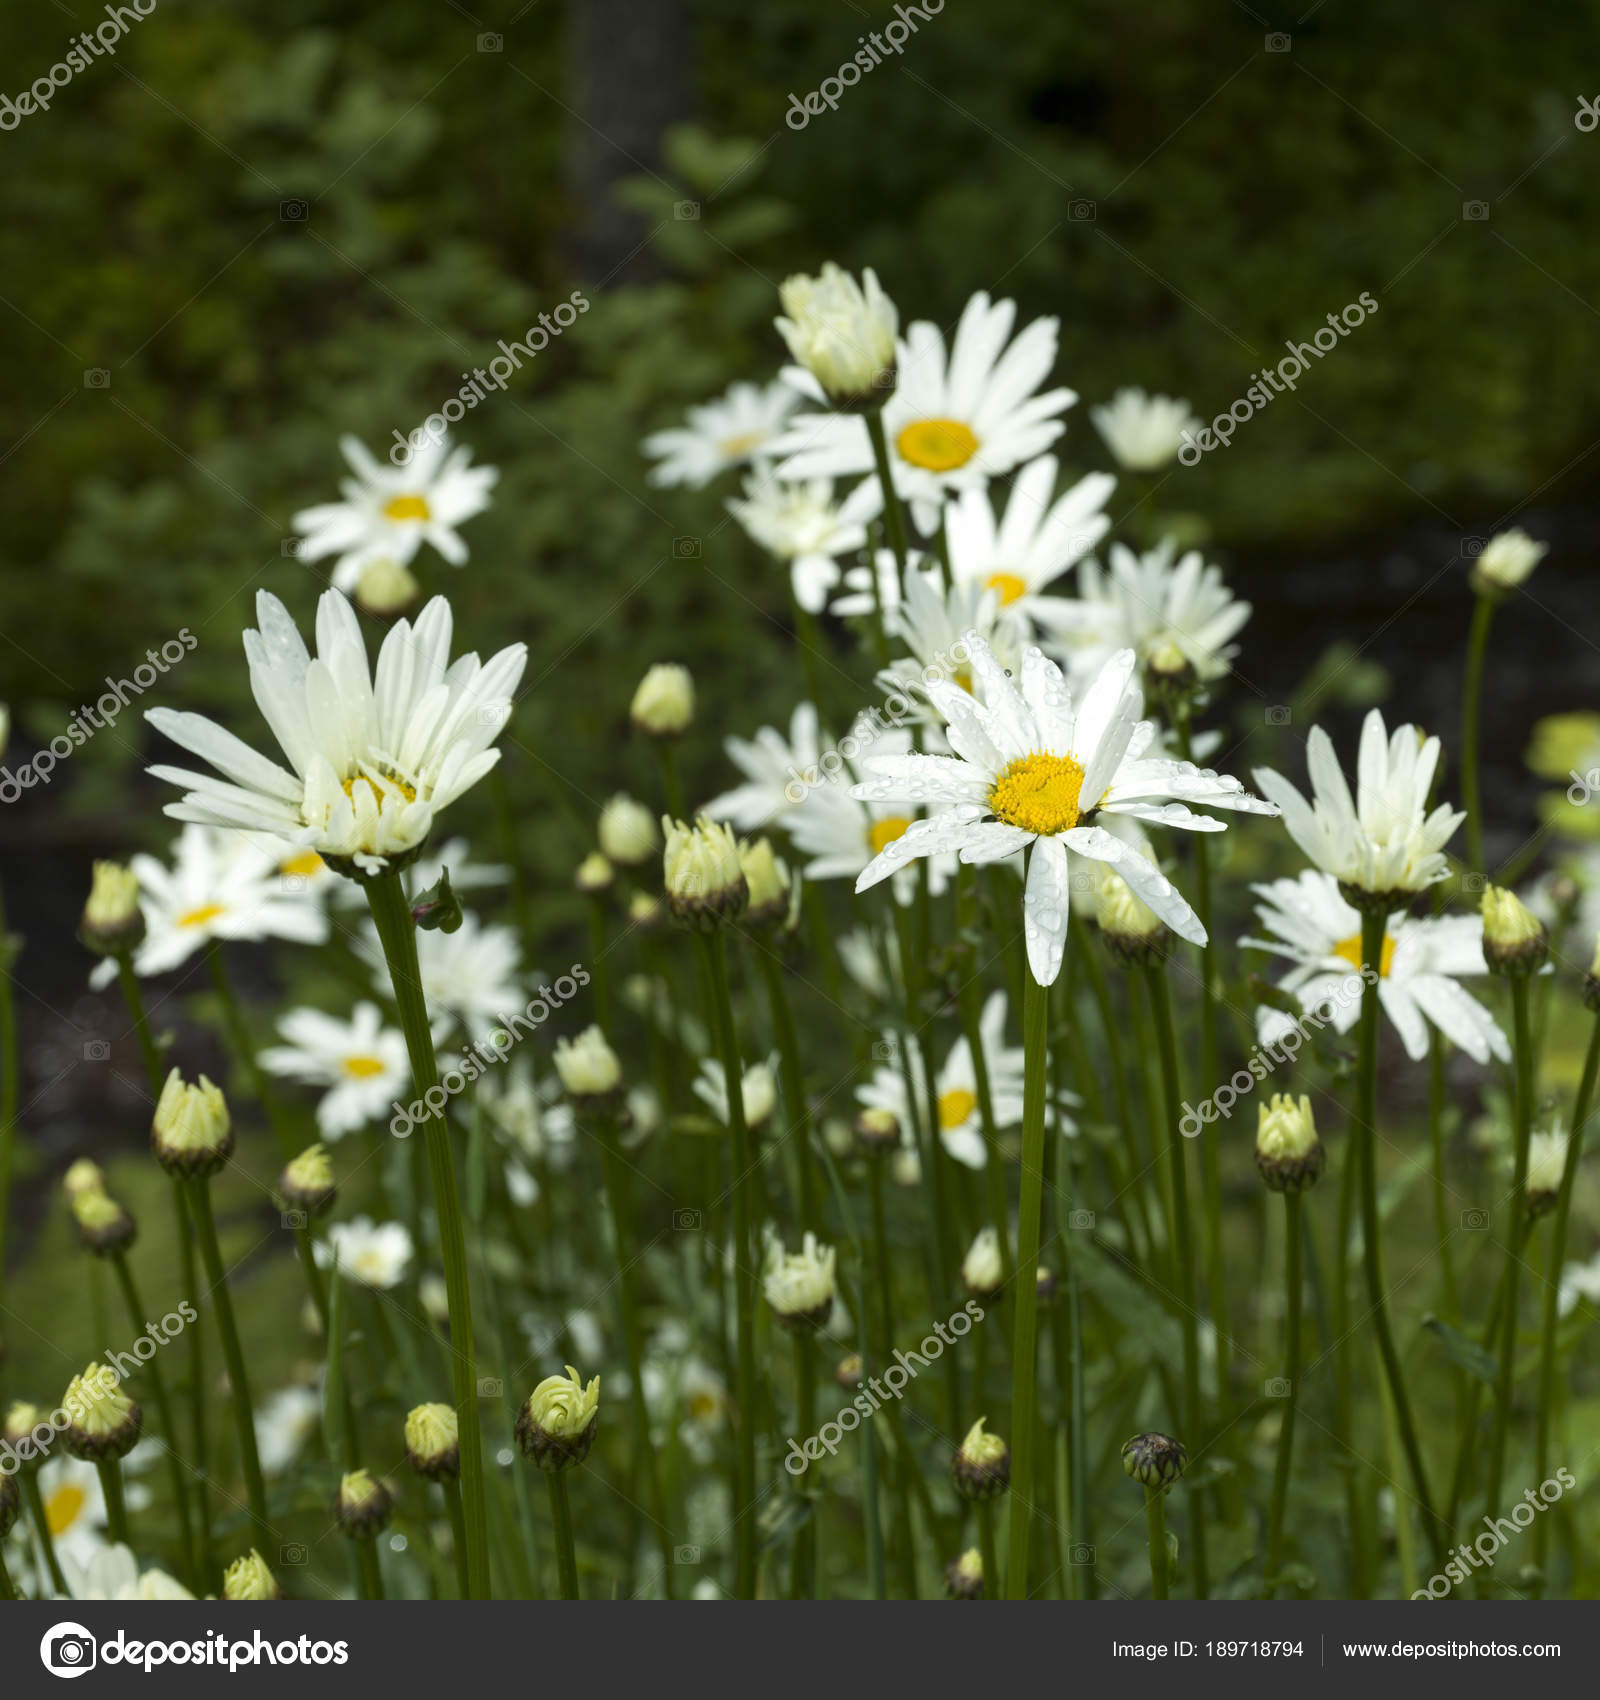 Close daisy flowers bloom blair atholl perthshire scotland stock close up of daisy flowers in bloom blair atholl perthshire scotland photo by klevitaw izmirmasajfo